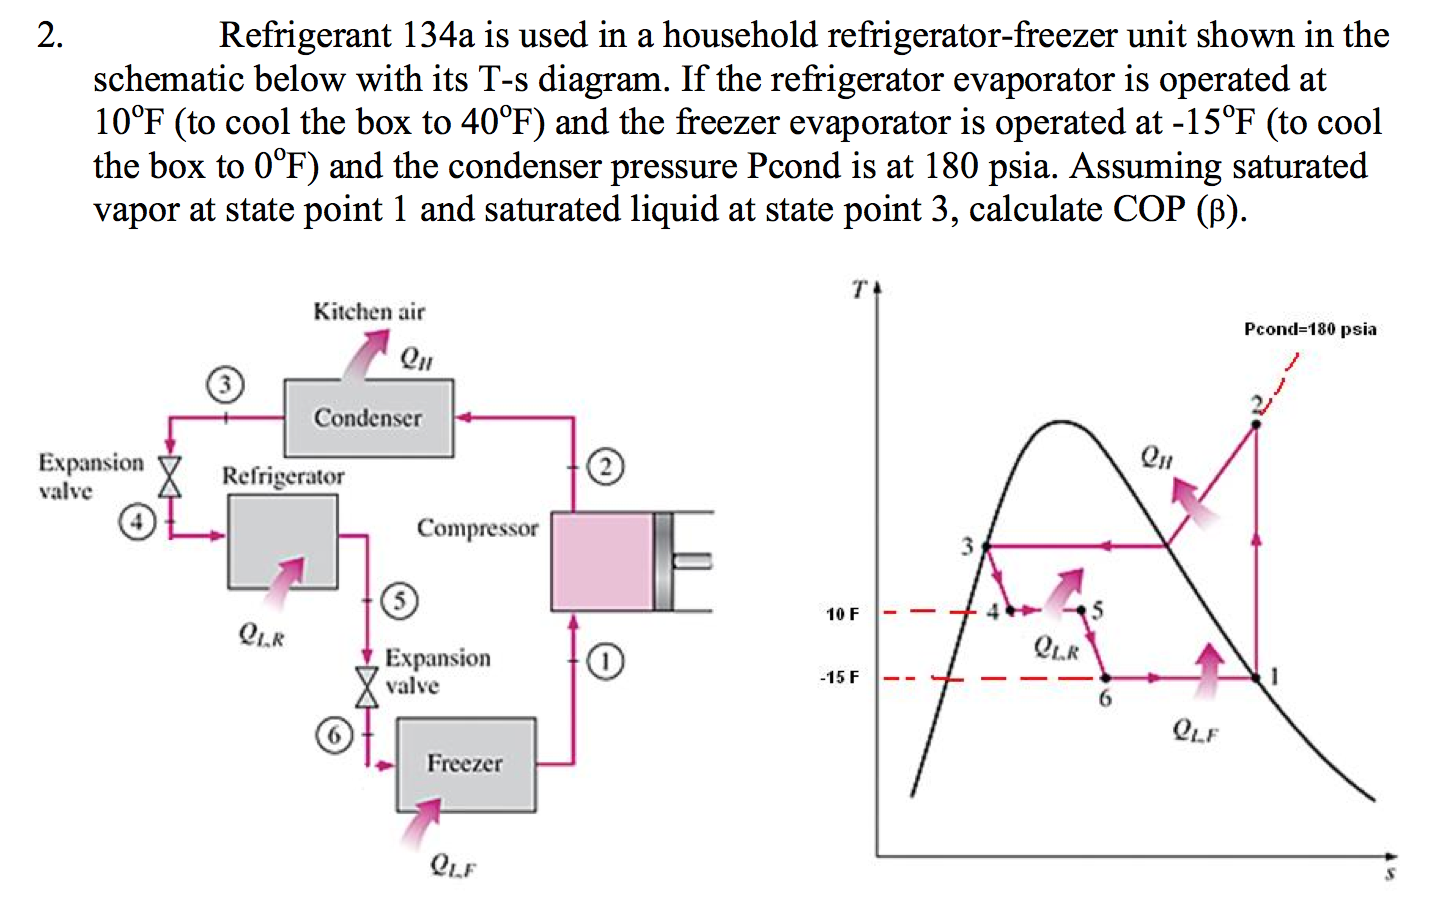 Refrigerant 134a is used in a household refrigerator-freezer unit shown in  the schematic below